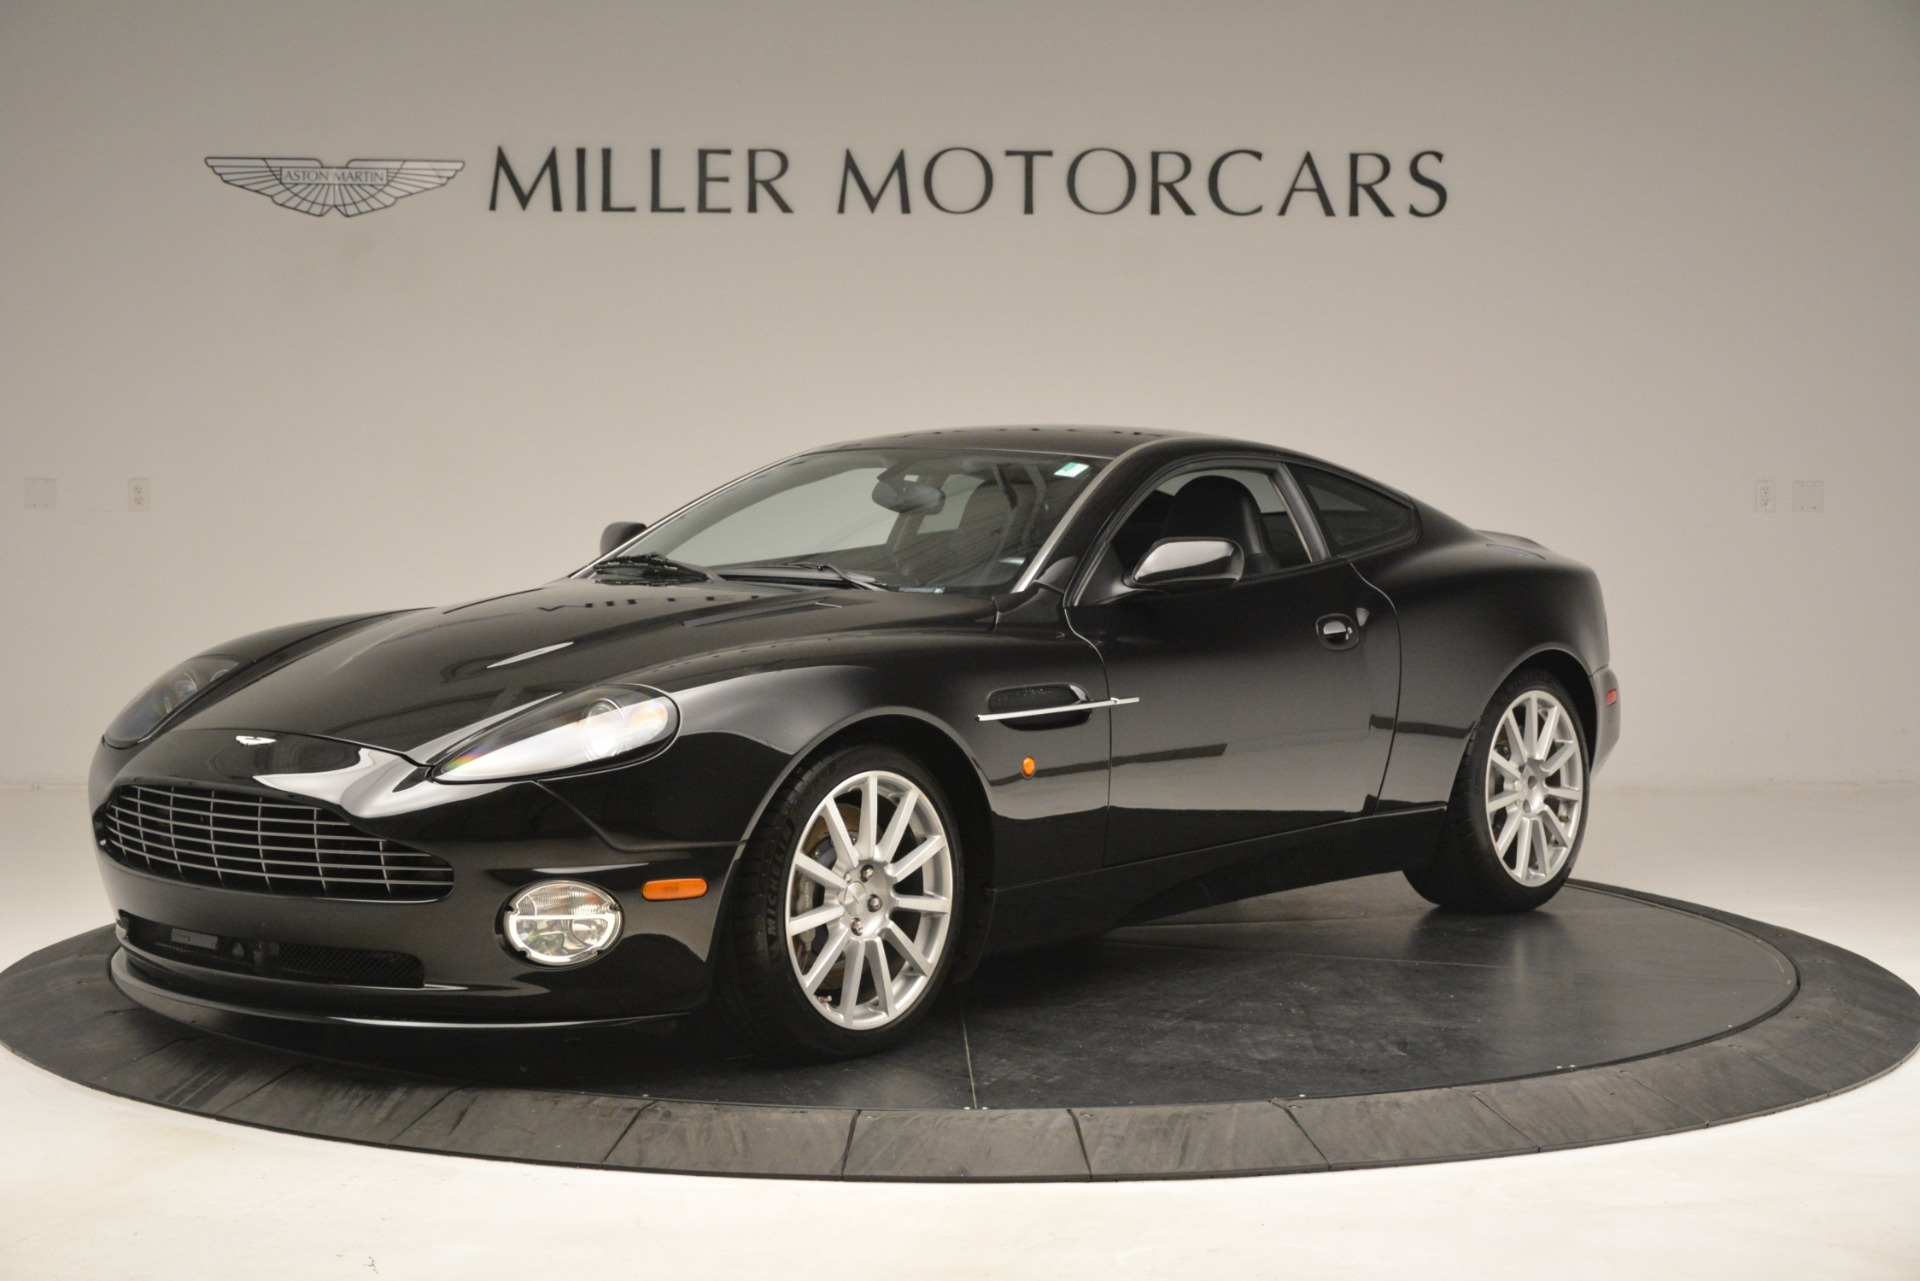 Used 2005 Aston Martin V12 Vanquish S Coupe for sale $95,900 at Aston Martin of Greenwich in Greenwich CT 06830 1